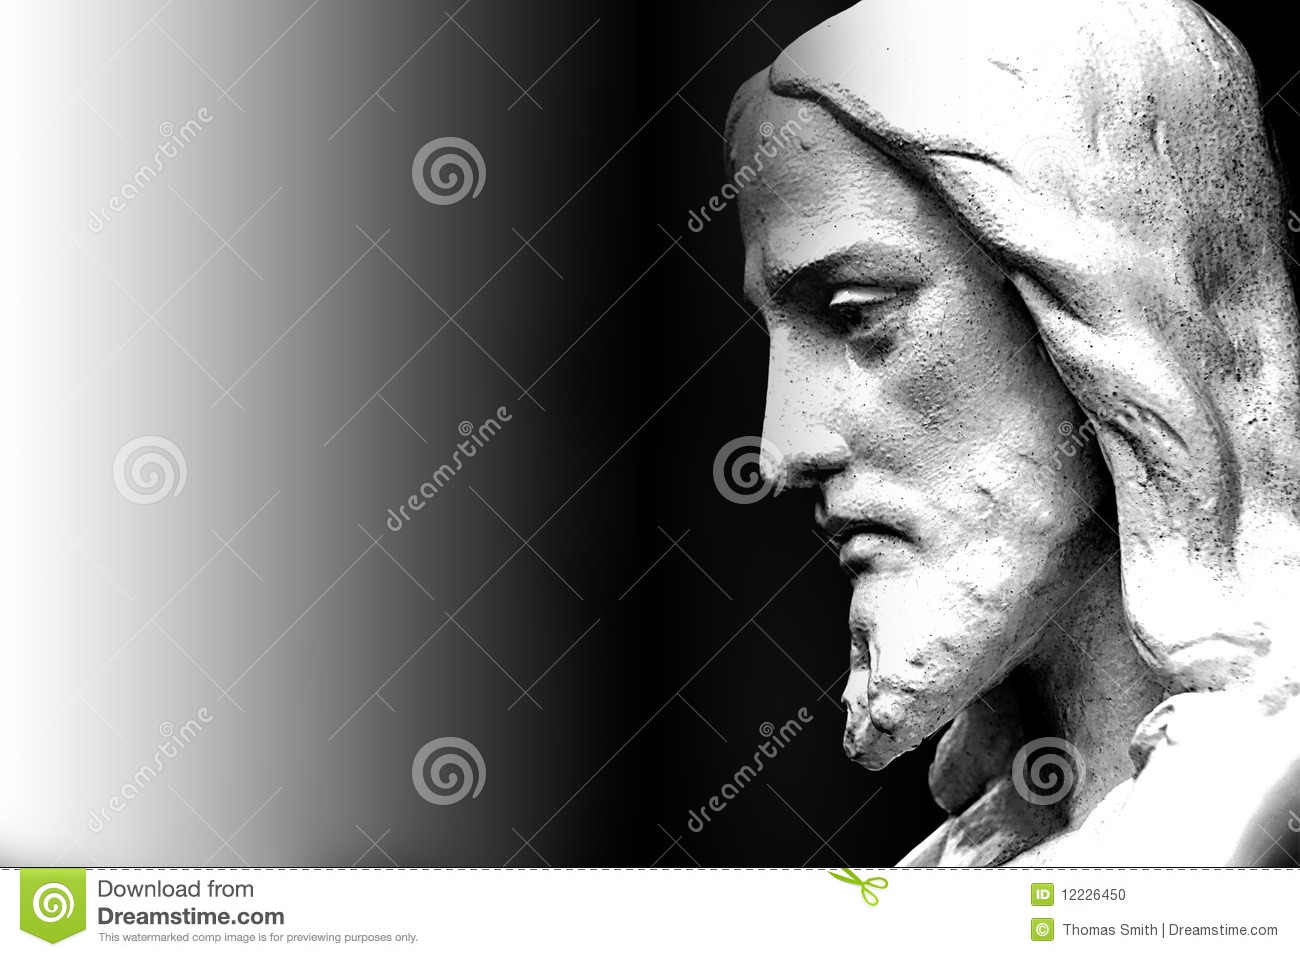 Related Keywords & Suggestions for jesus face statue